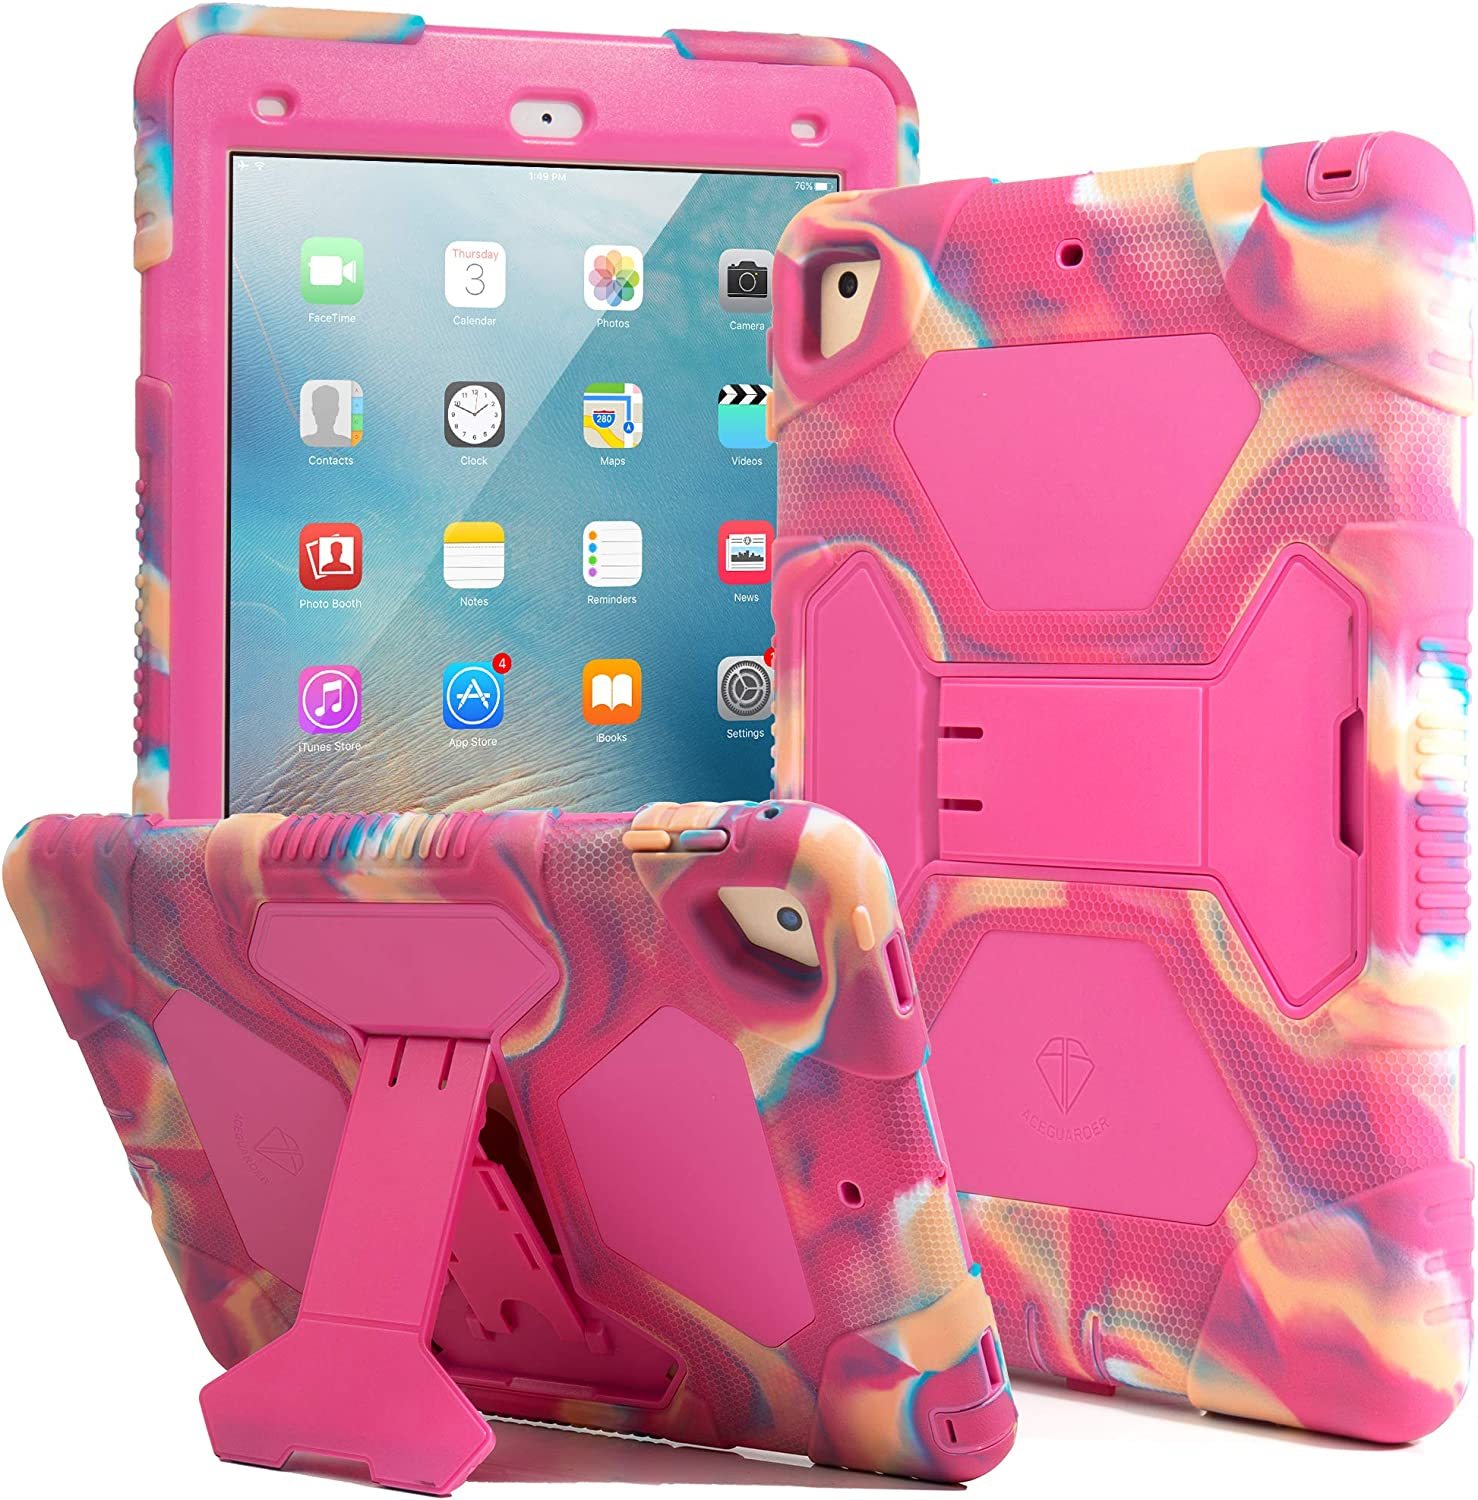 Kids Case for iPad 9.7 2018/2017, iPad Air 2, iPad Pro 9.7 Case Full Body Protective Silicone Cover Adjustable Kickstand for Apple iPad 9.7 5th / 6th Generation (Camo/Pink)